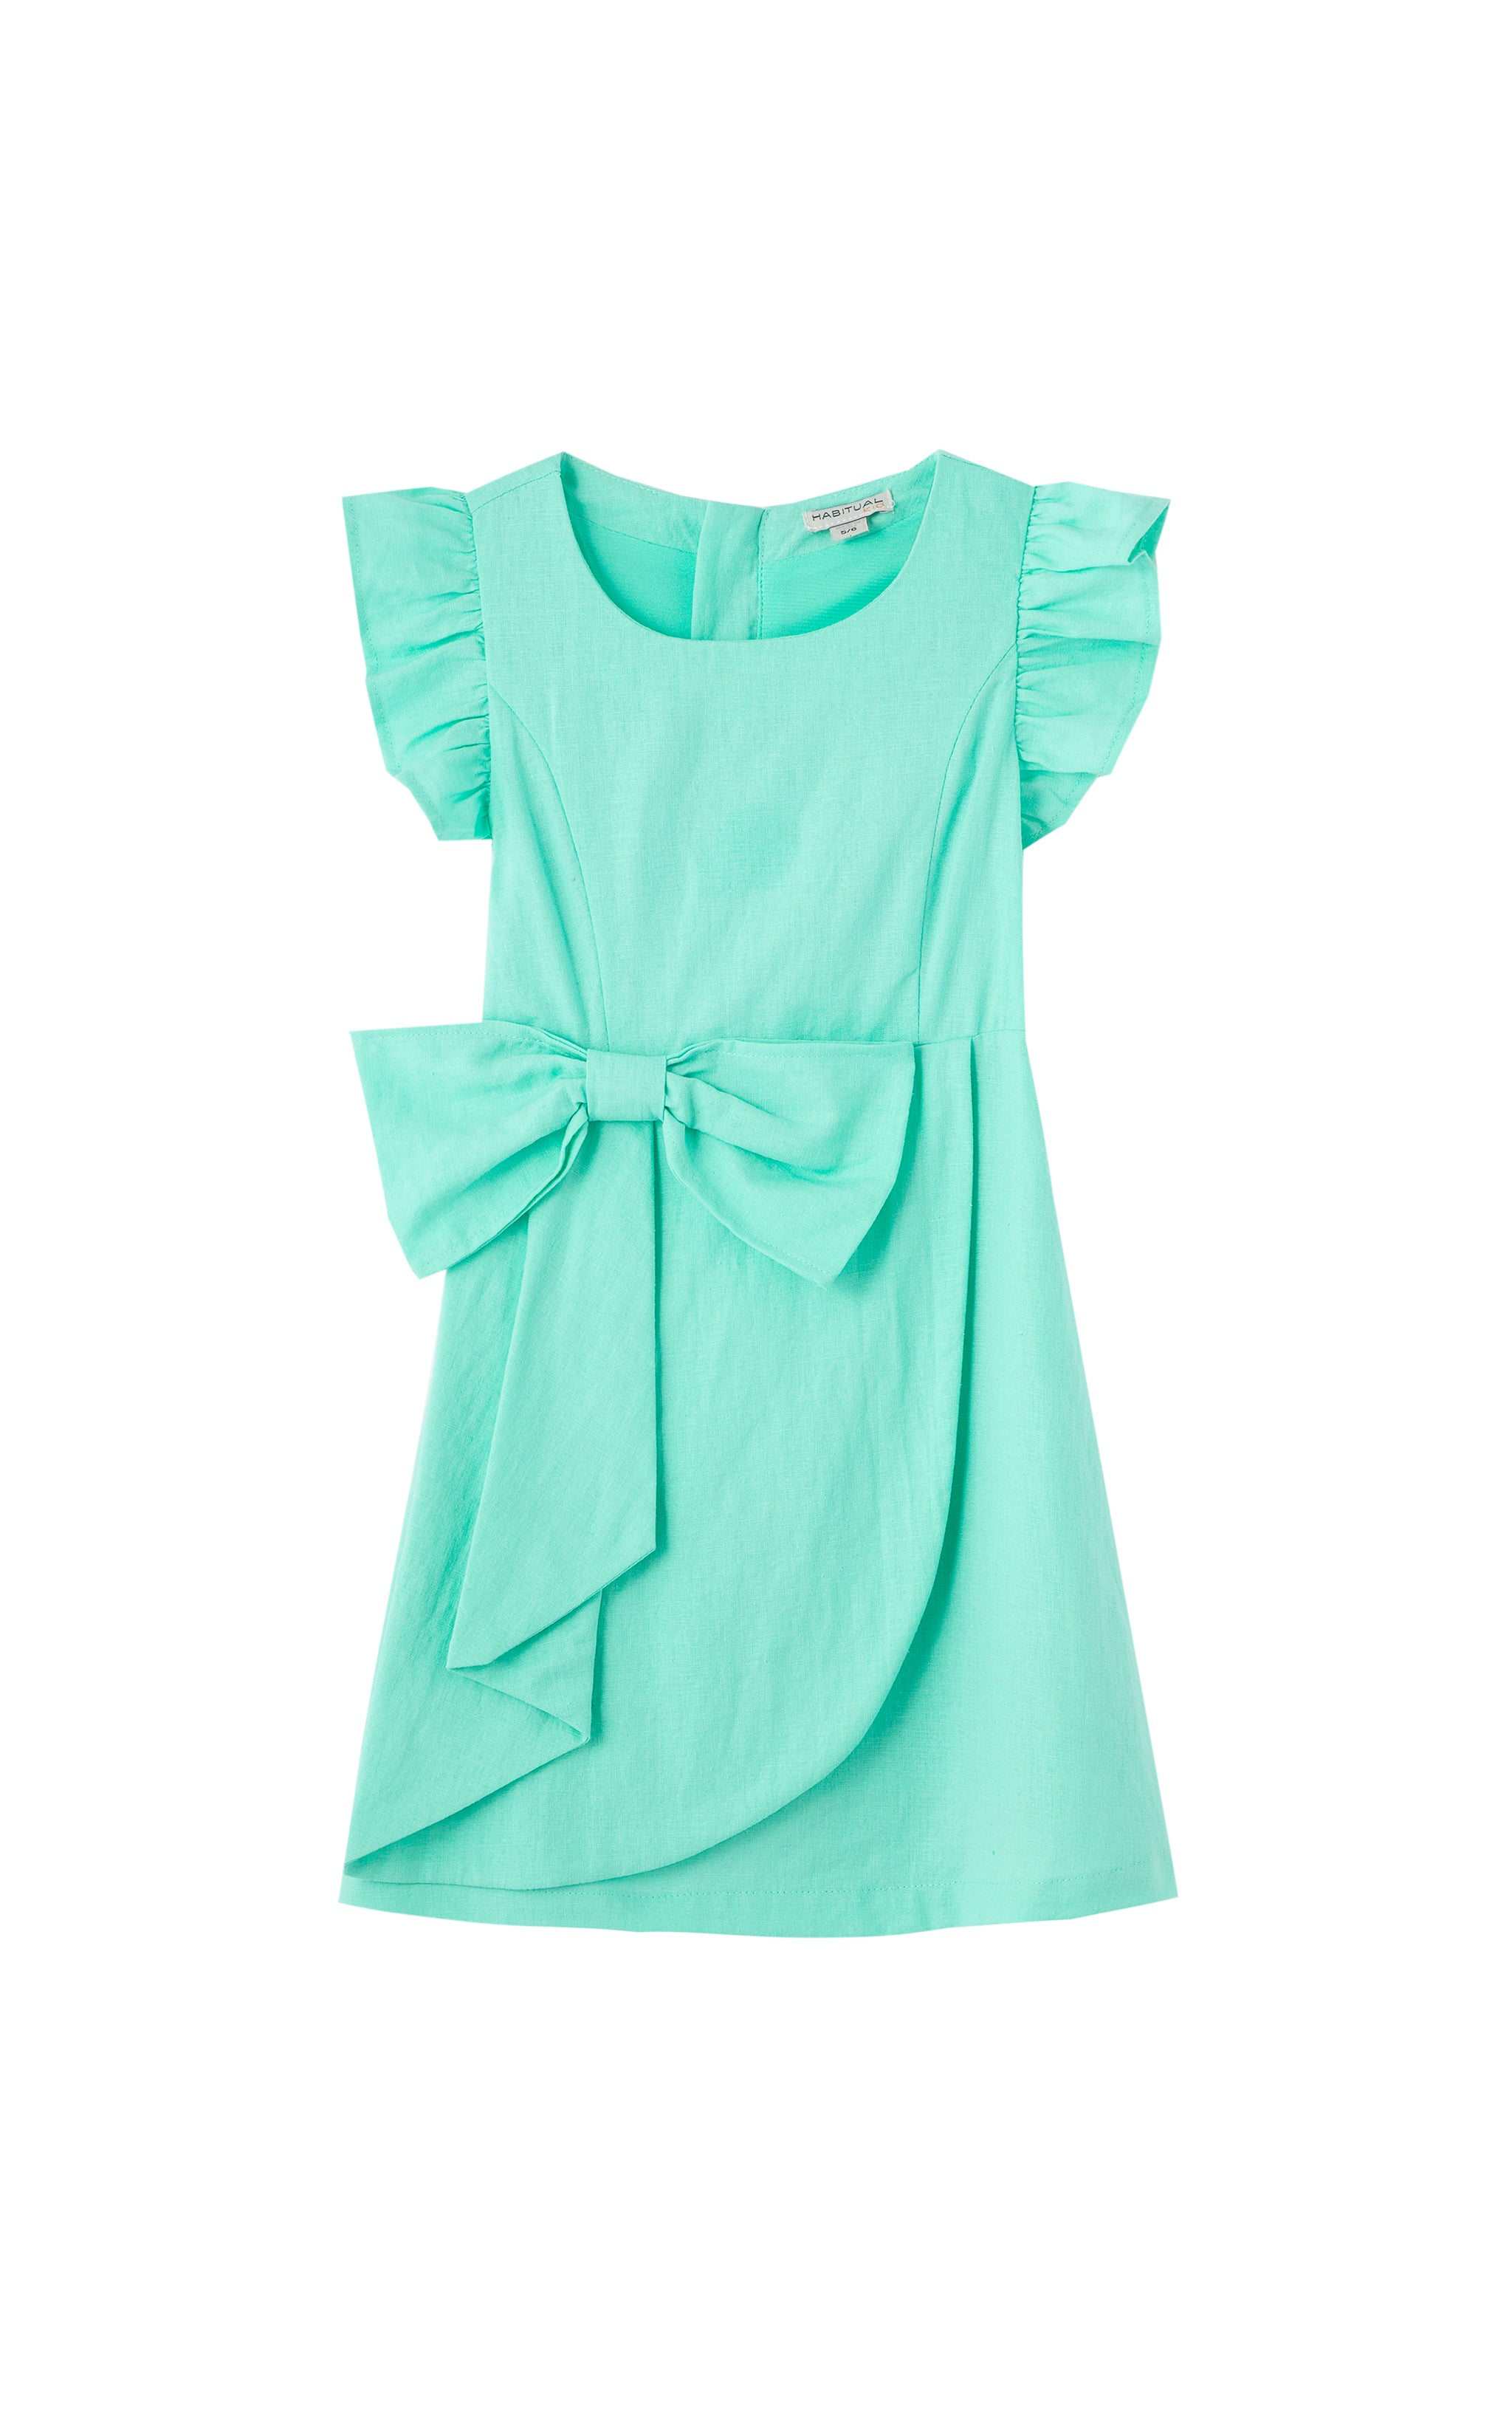 Drape Wrap Dress | 2-4T